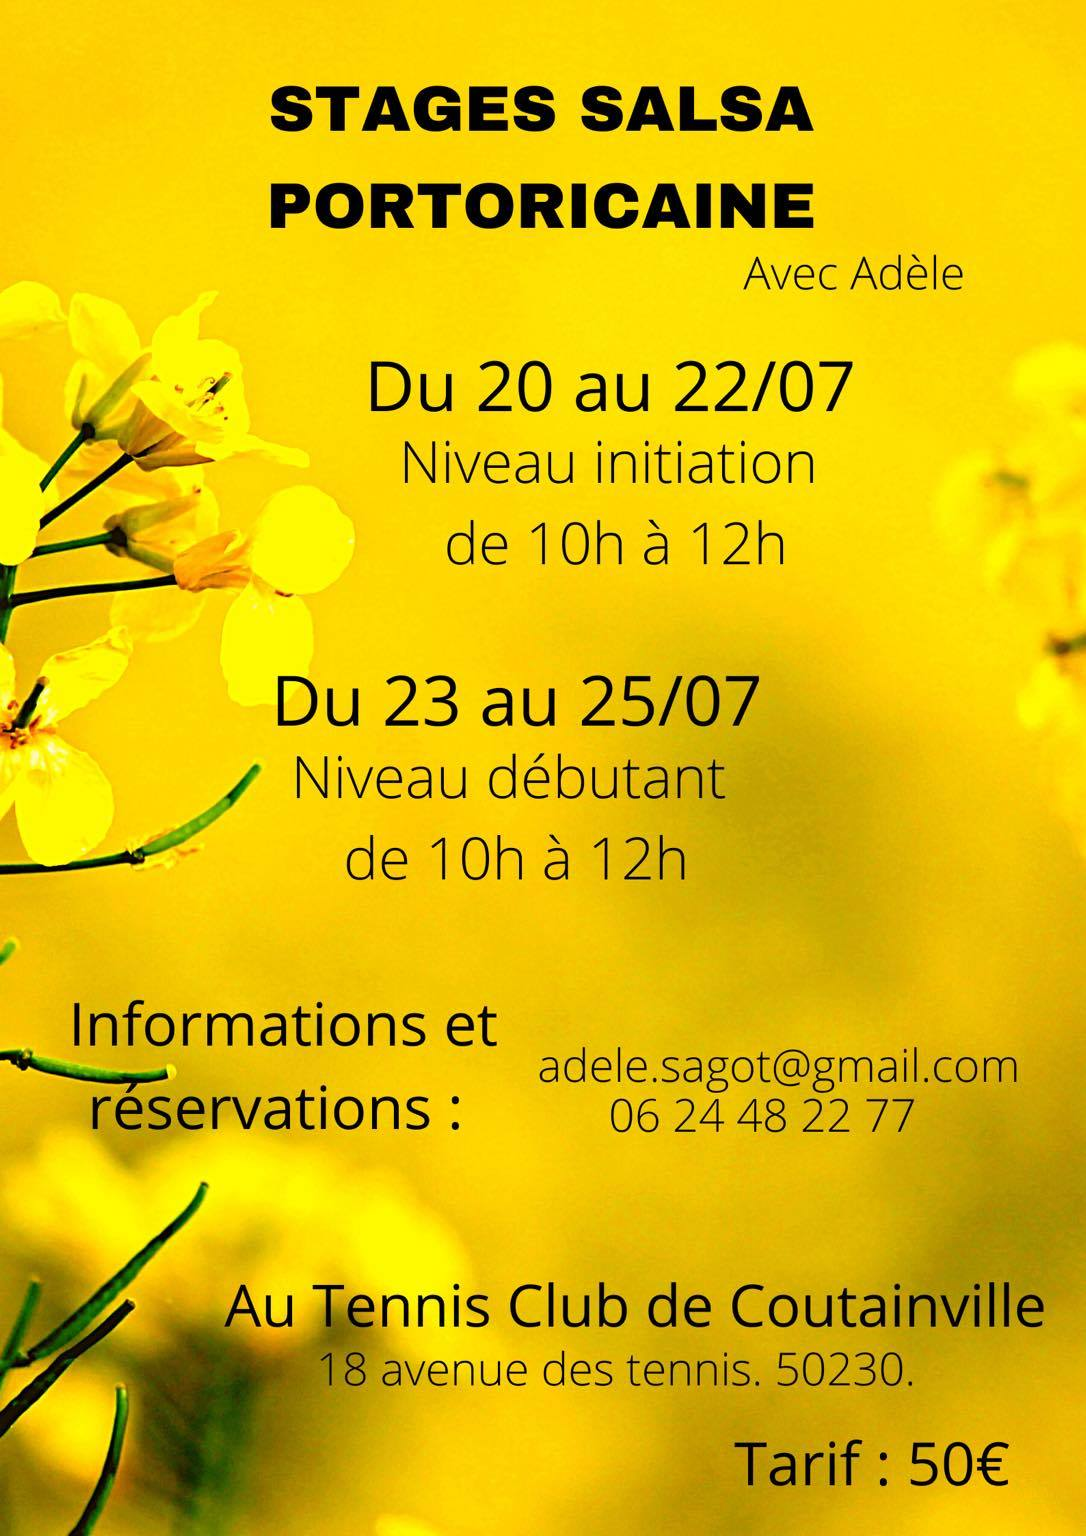 Stage Salsa Portoricaine au Tennis club de Coutainville